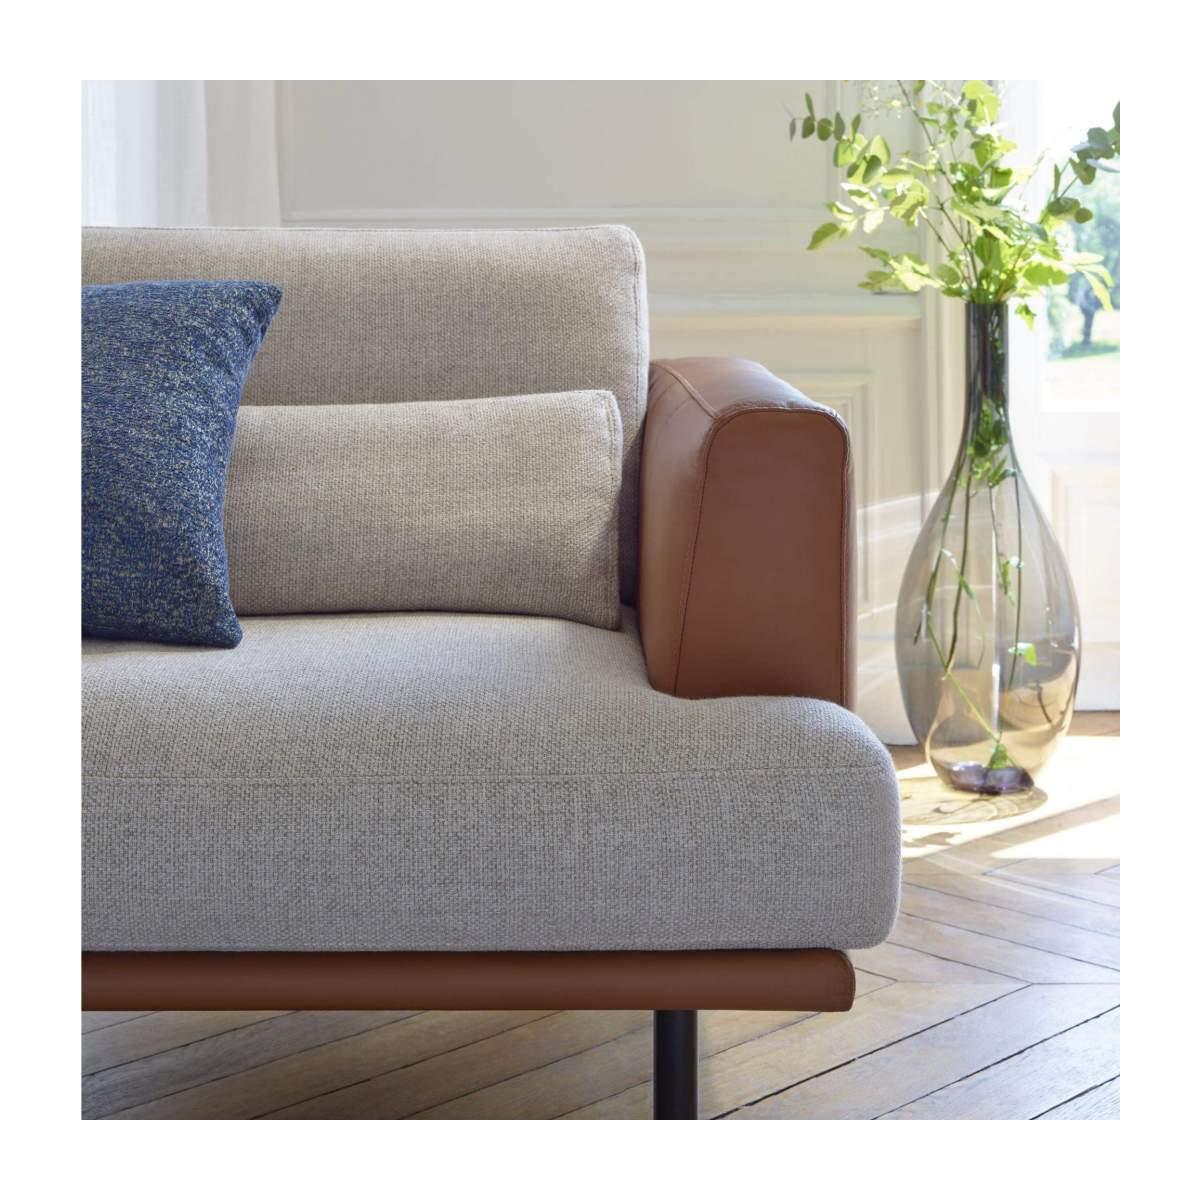 3 seater sofa in Super Velvet fabric, dark blue with base in brown leather n°5